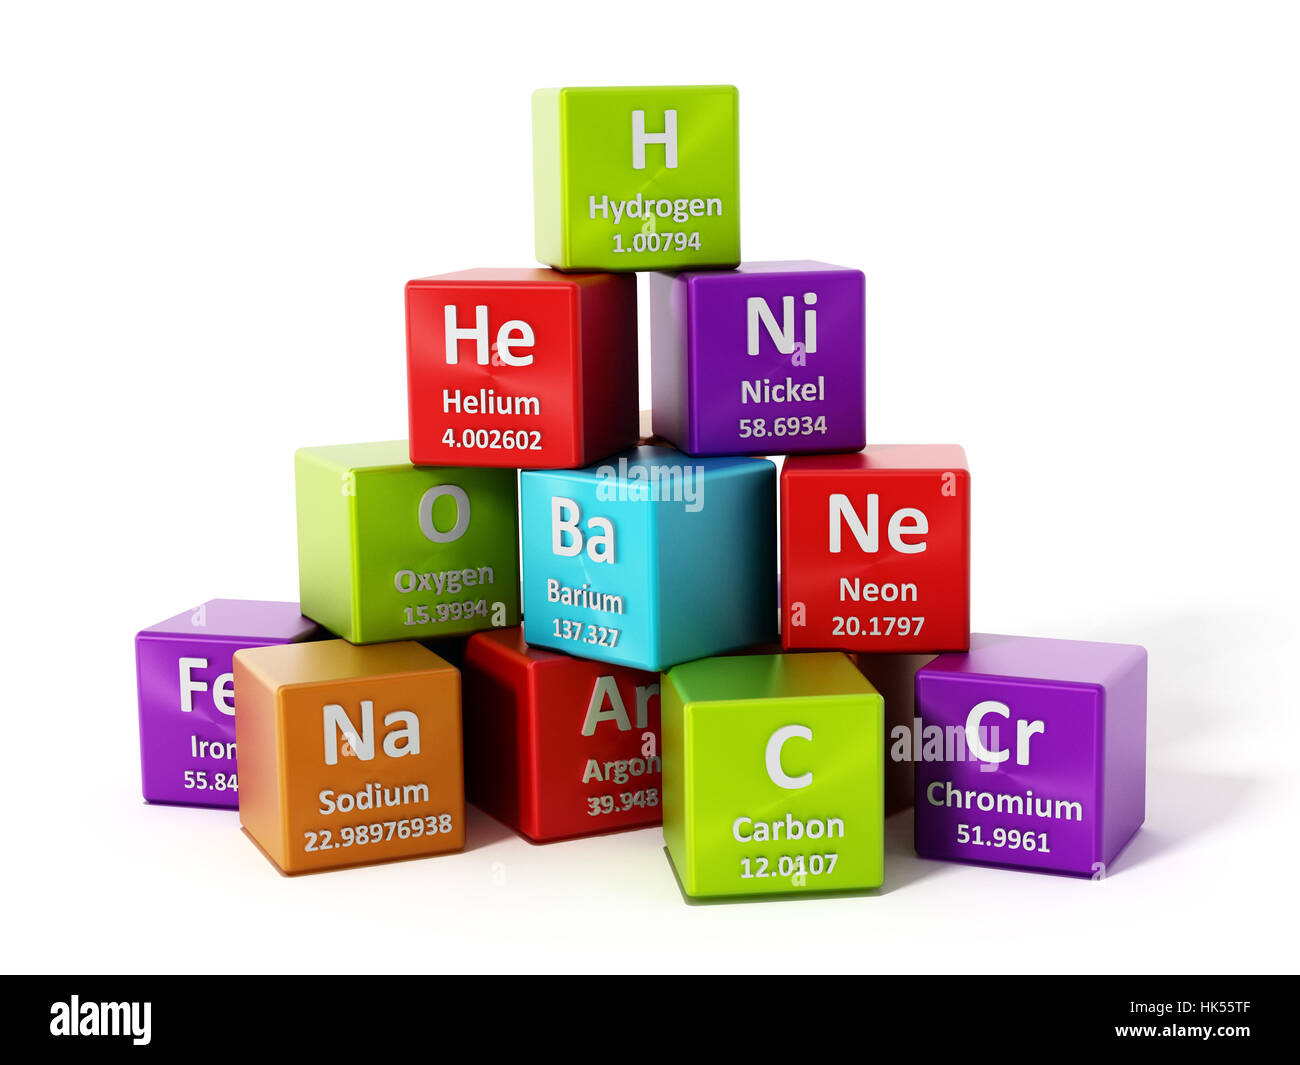 Periodic table elements isolated on white background 3d stock photo periodic table elements isolated on white background 3d illustration urtaz Choice Image